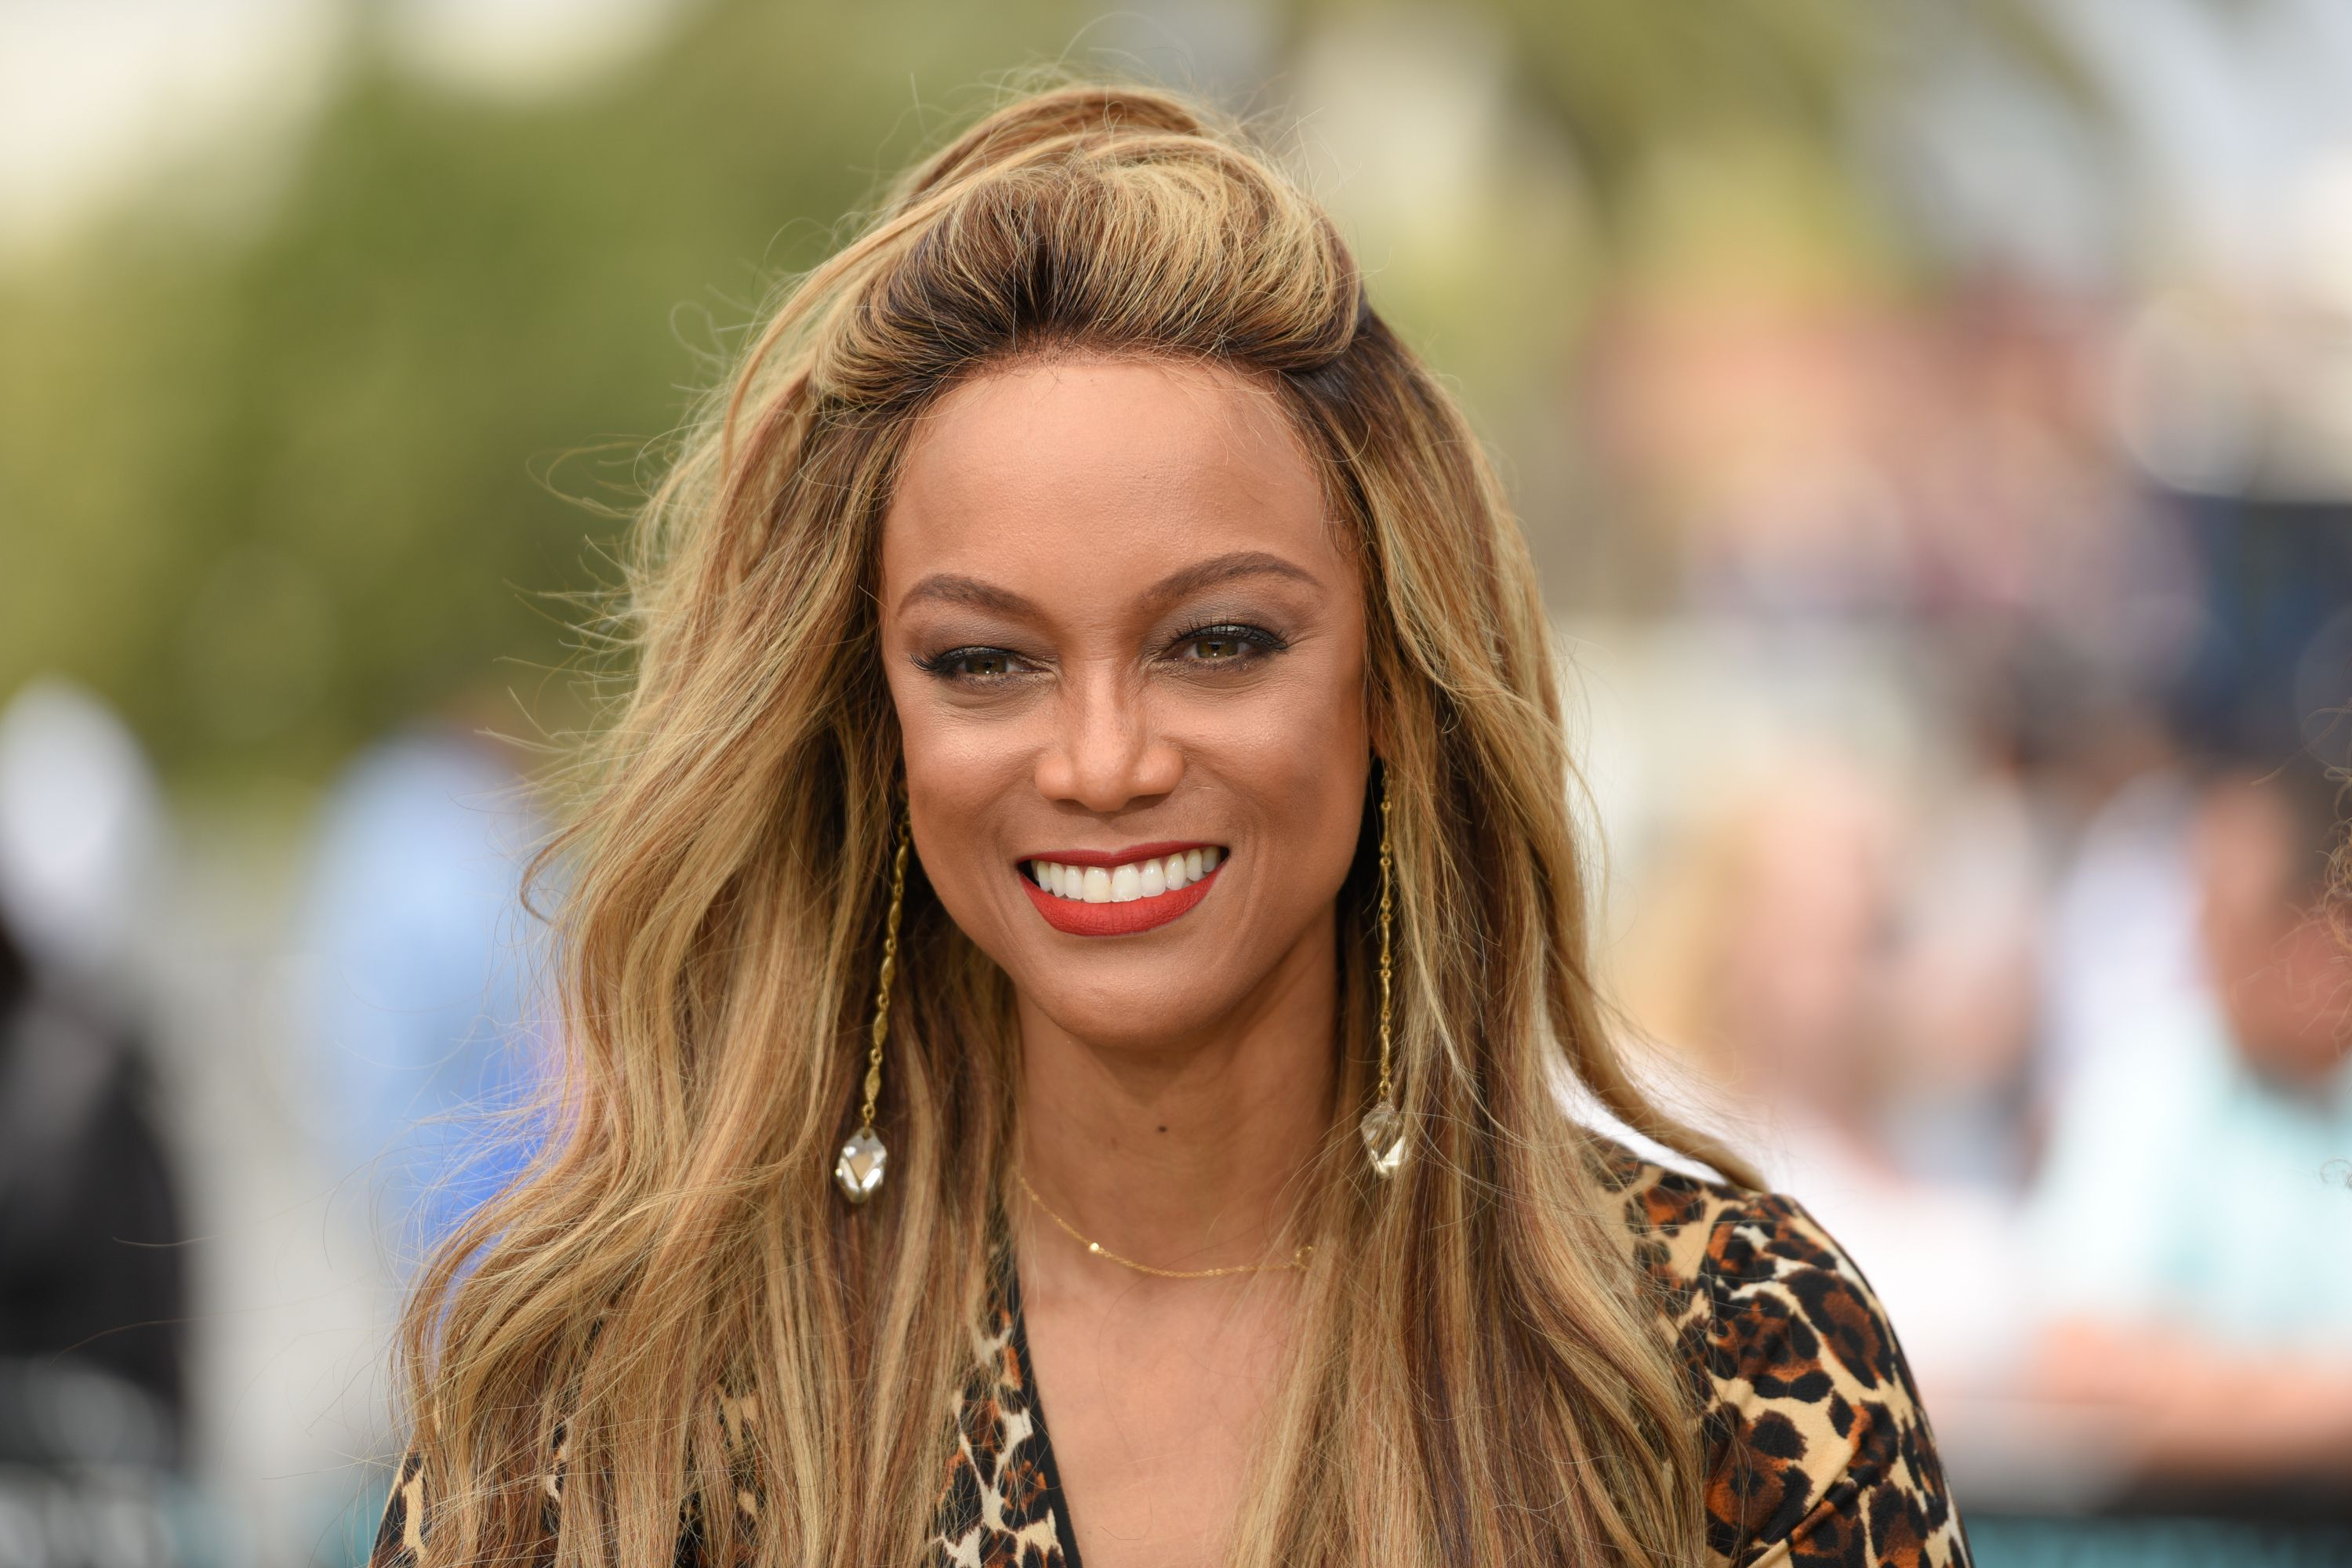 To acquire Banks tyra is launching a beauty company pictures trends